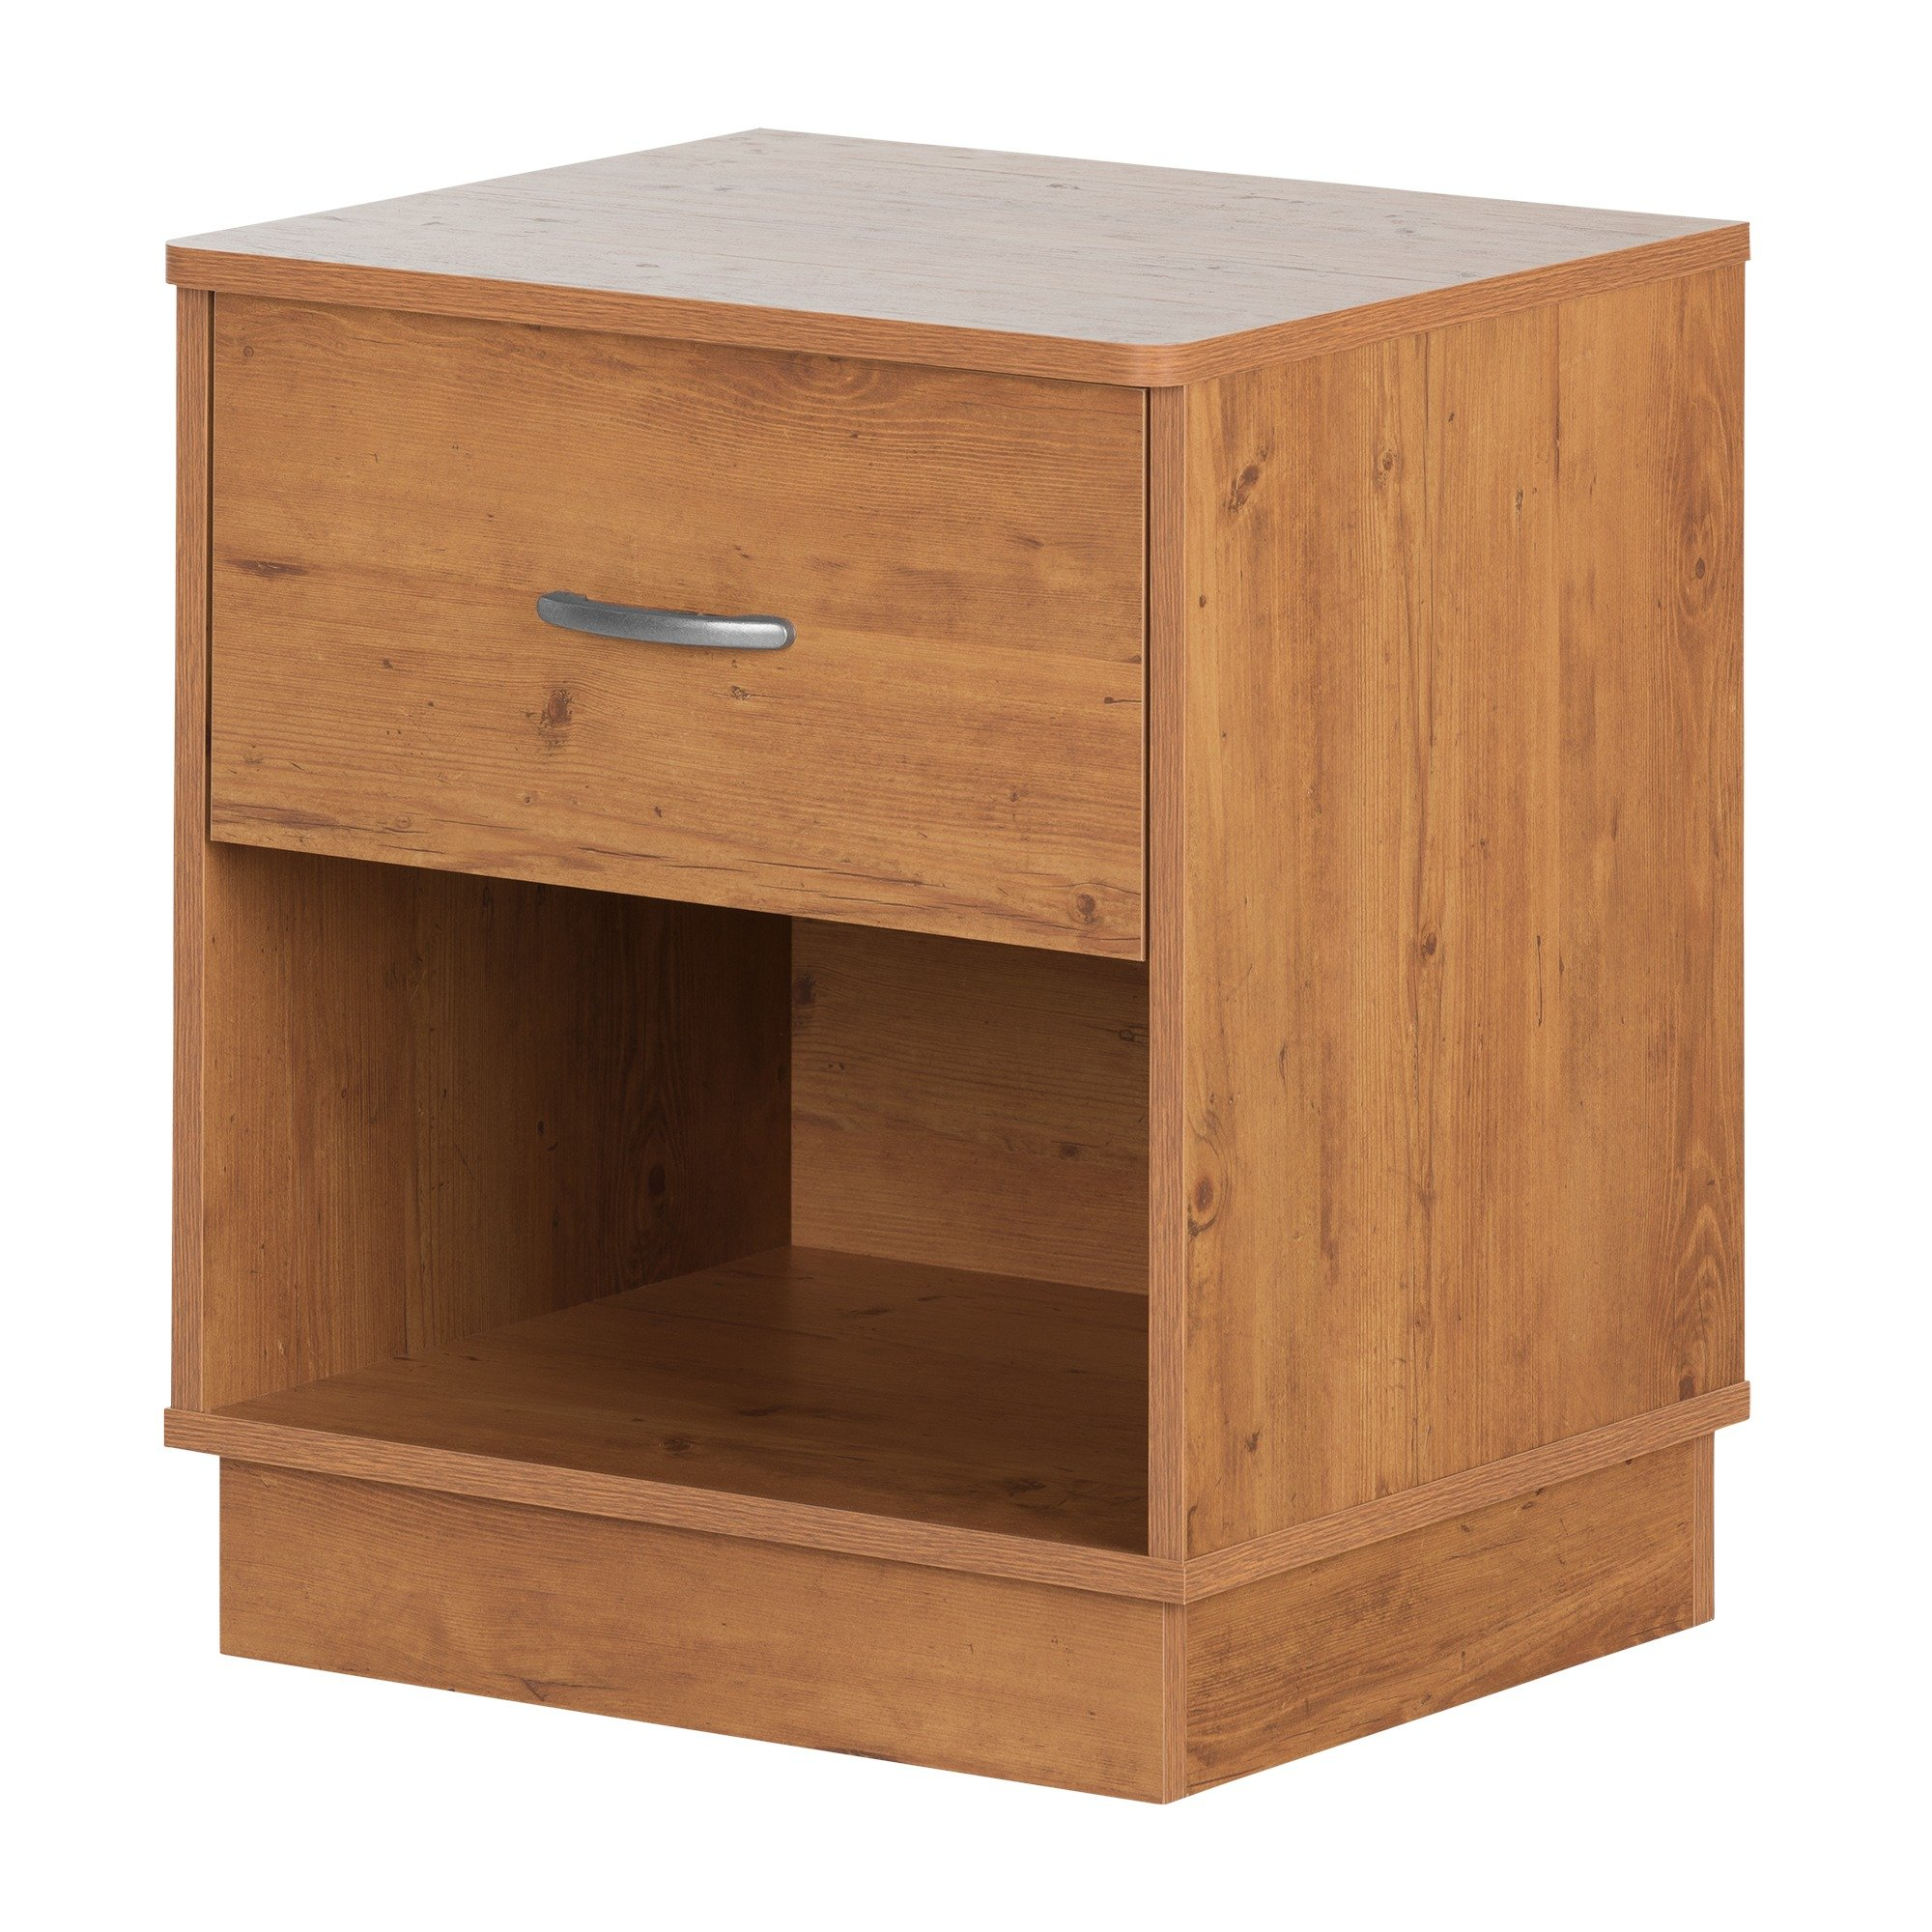 South Shore Logik 1-Drawer Nightstand, Country Pine with Metal Handle by South Shore